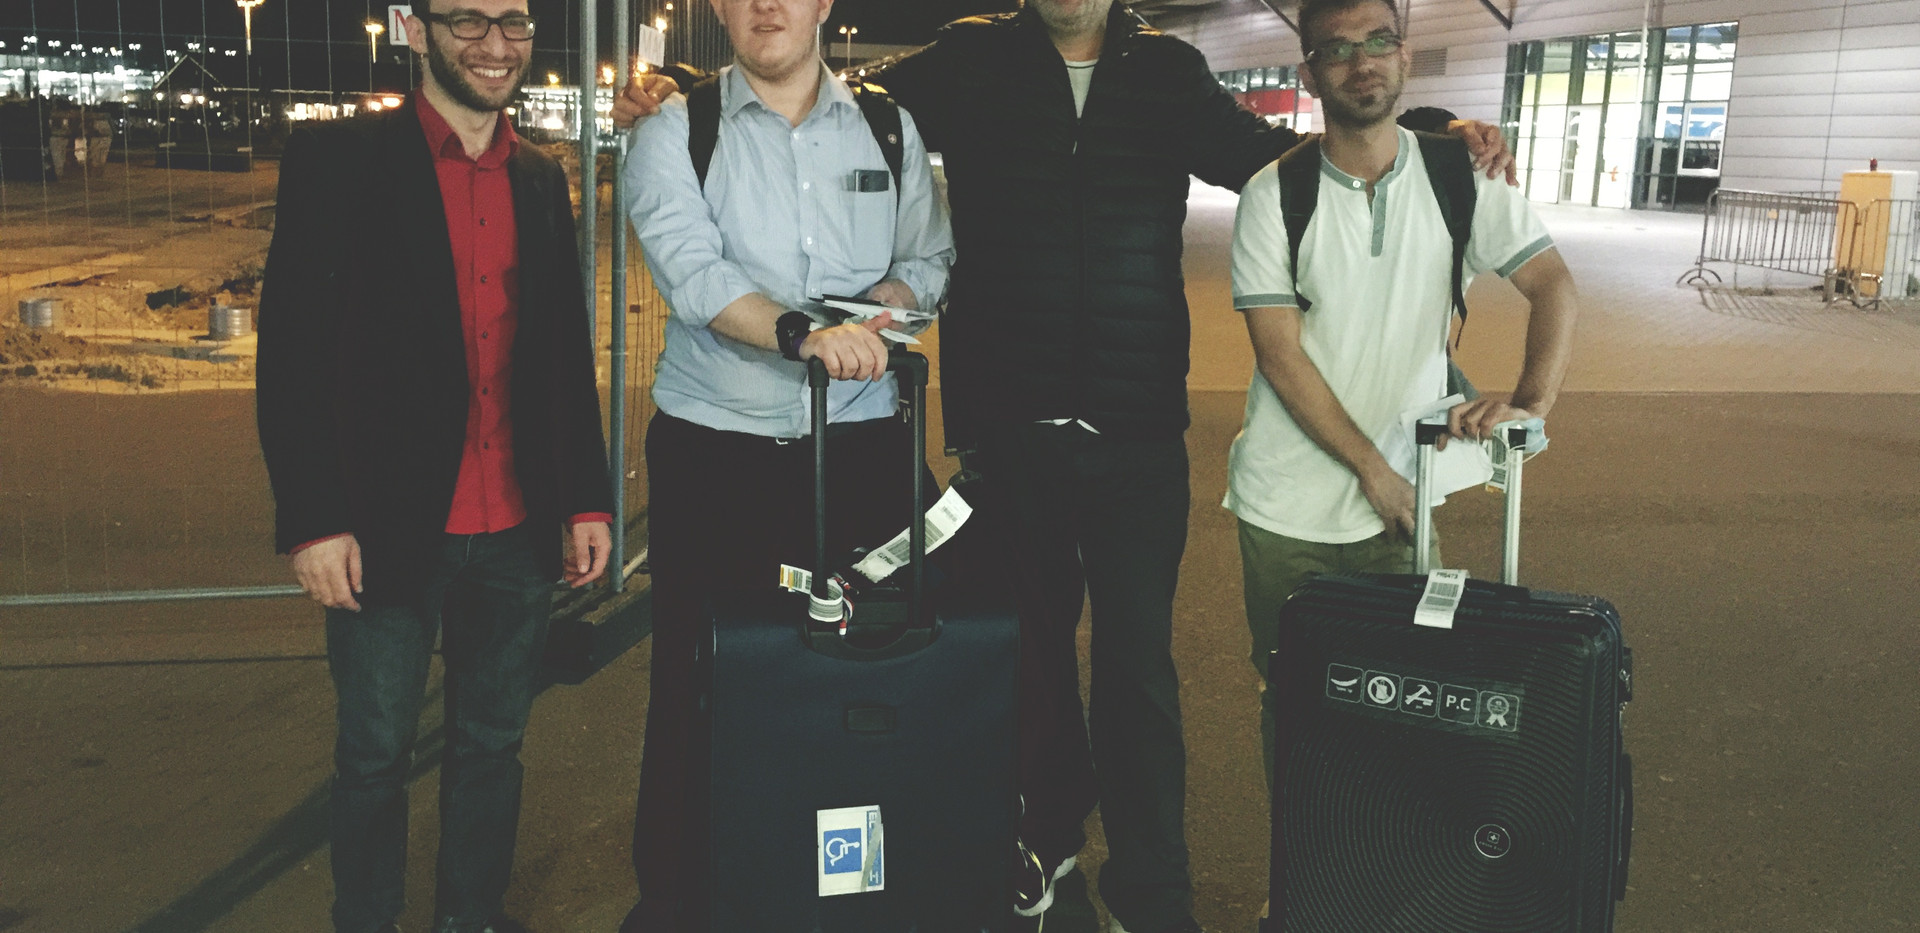 The first students arrived from Israel: Daniel and Moshe.